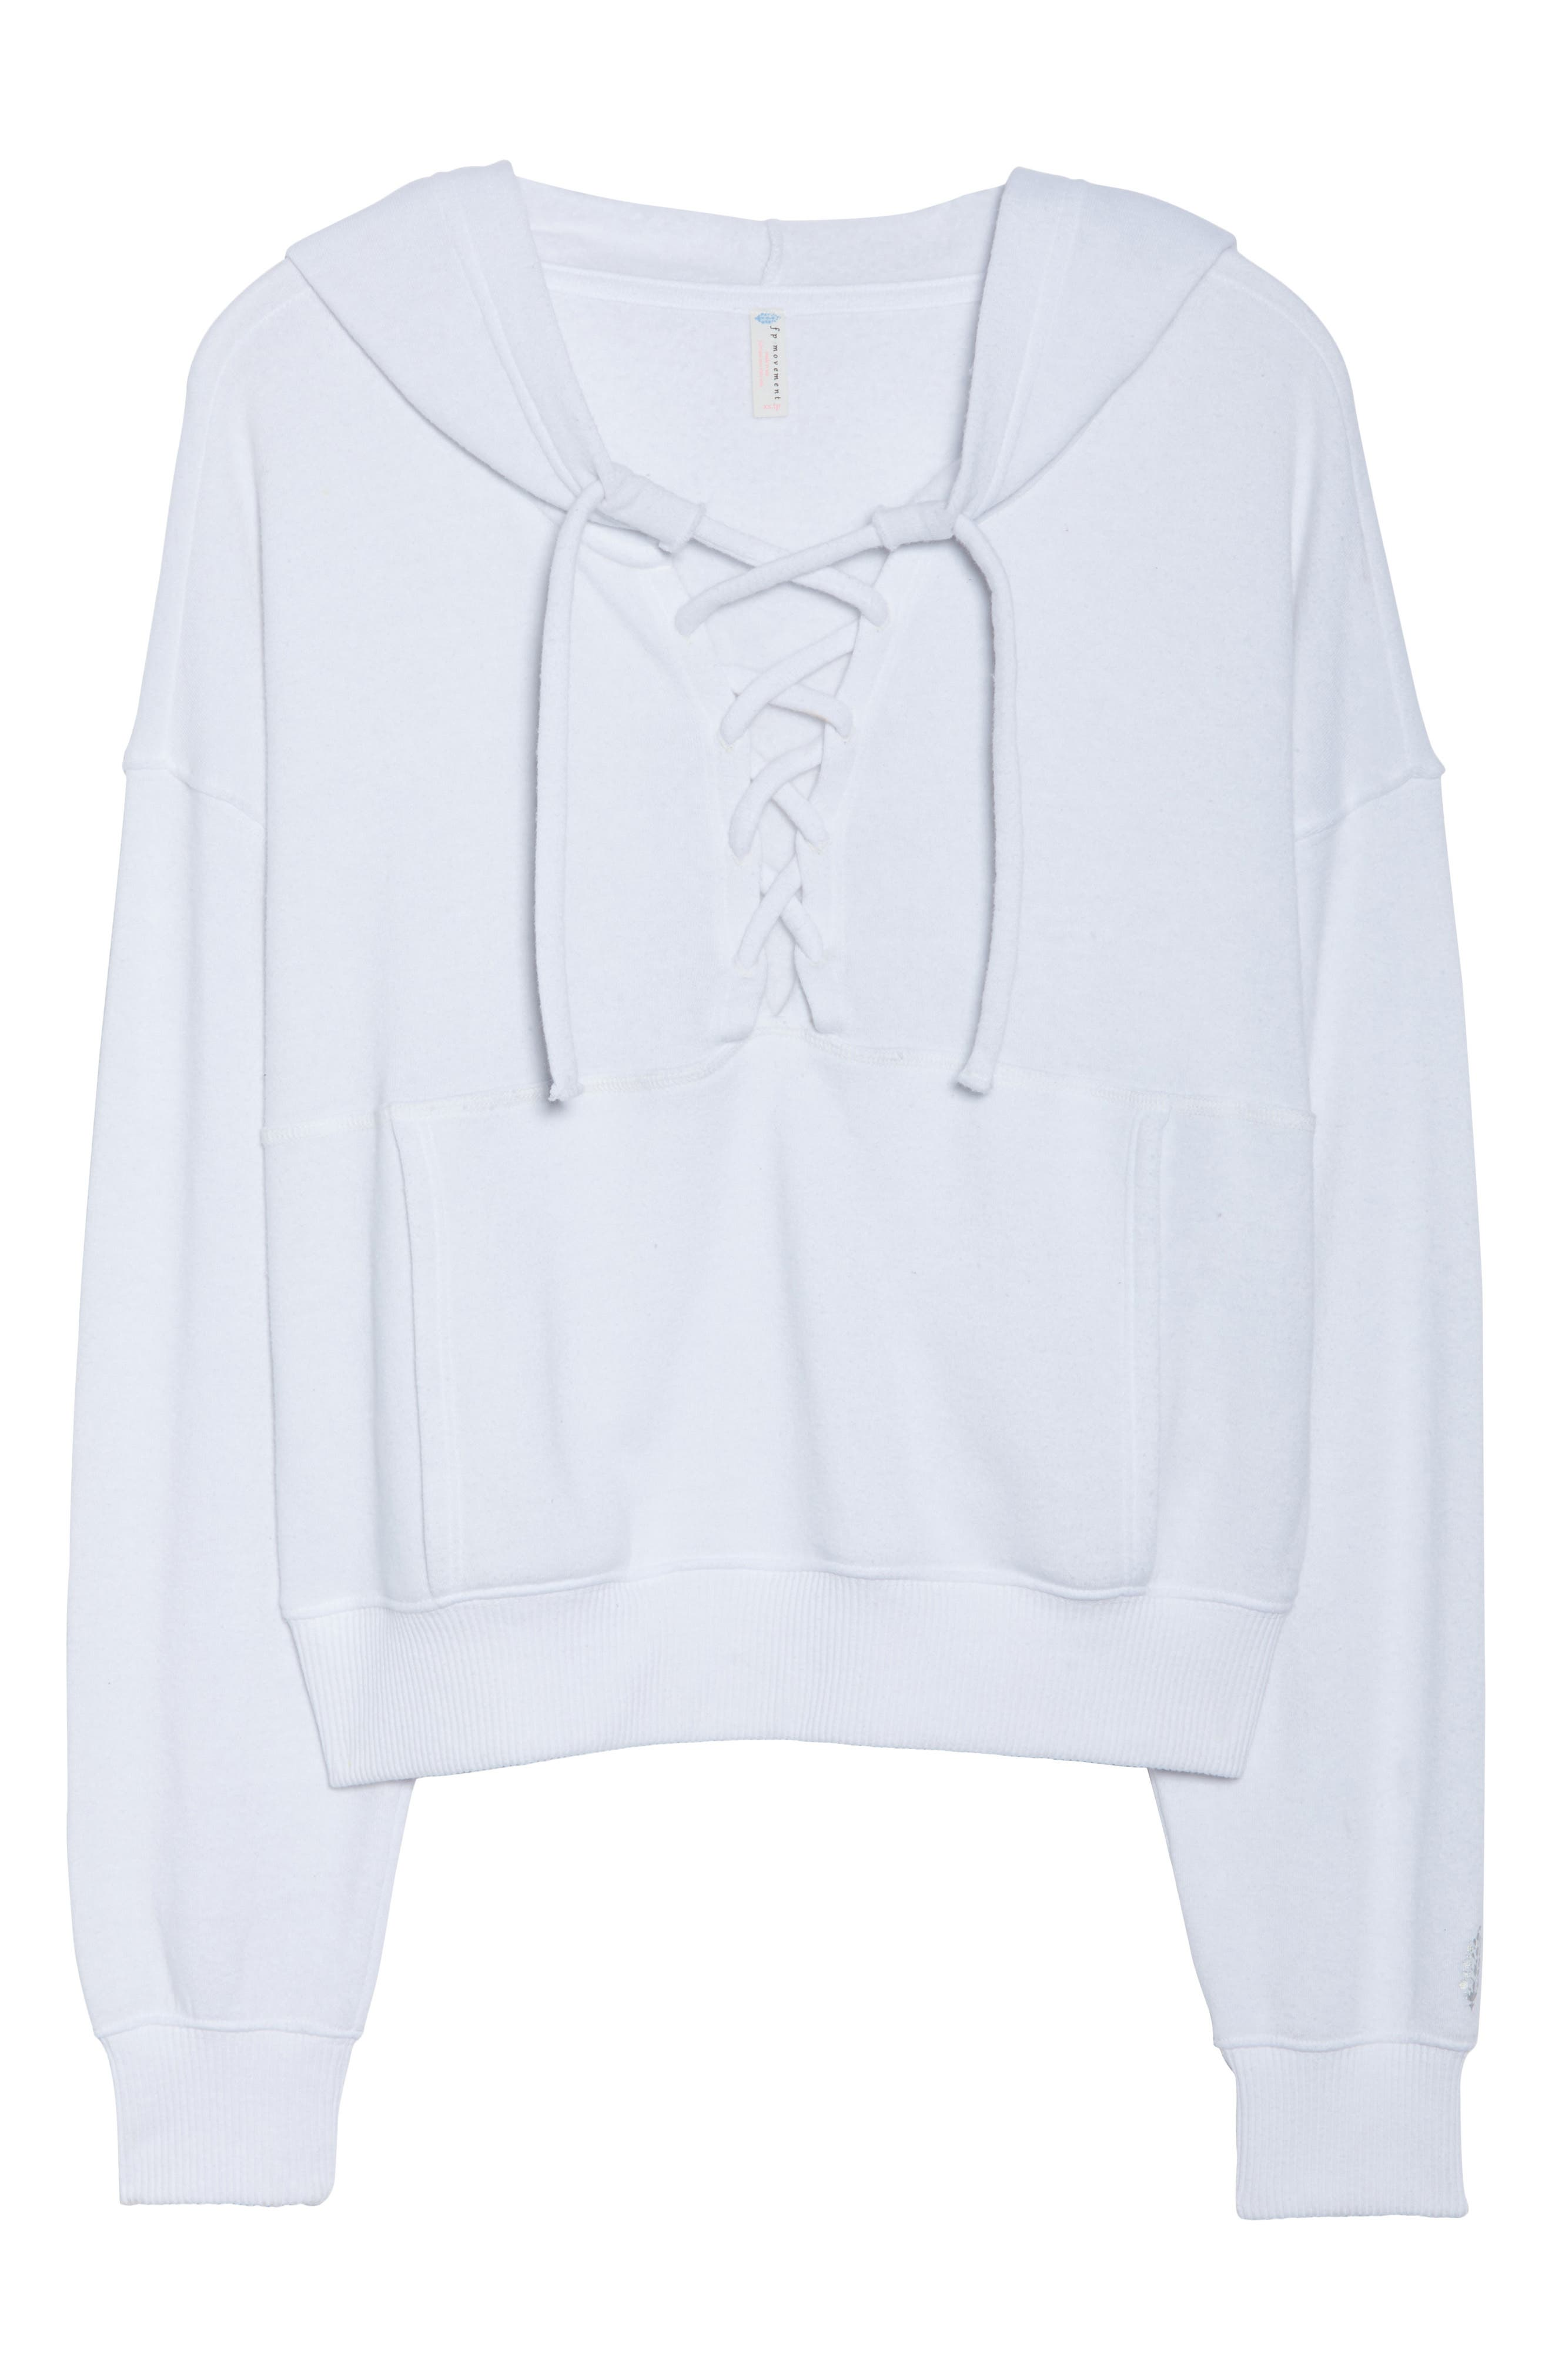 FREE PEOPLE MOVEMENT, Believer Hoodie, Alternate thumbnail 7, color, WHITE